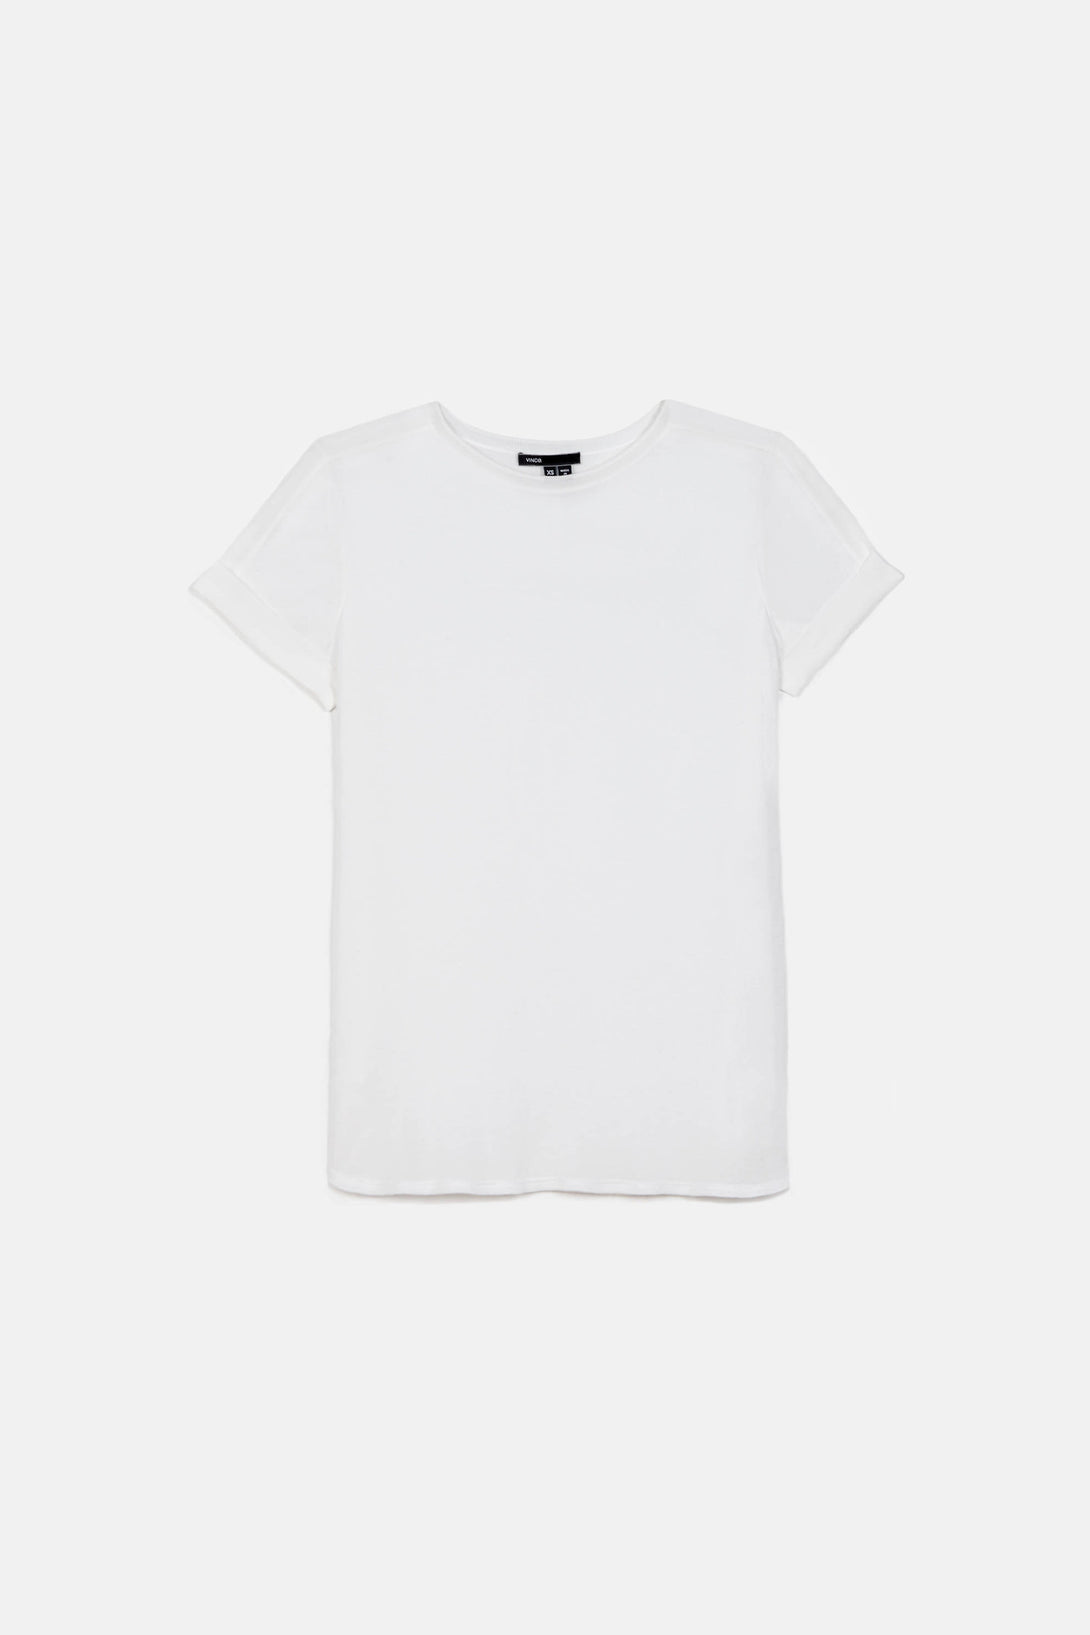 Mixed Media S/S Tee - White